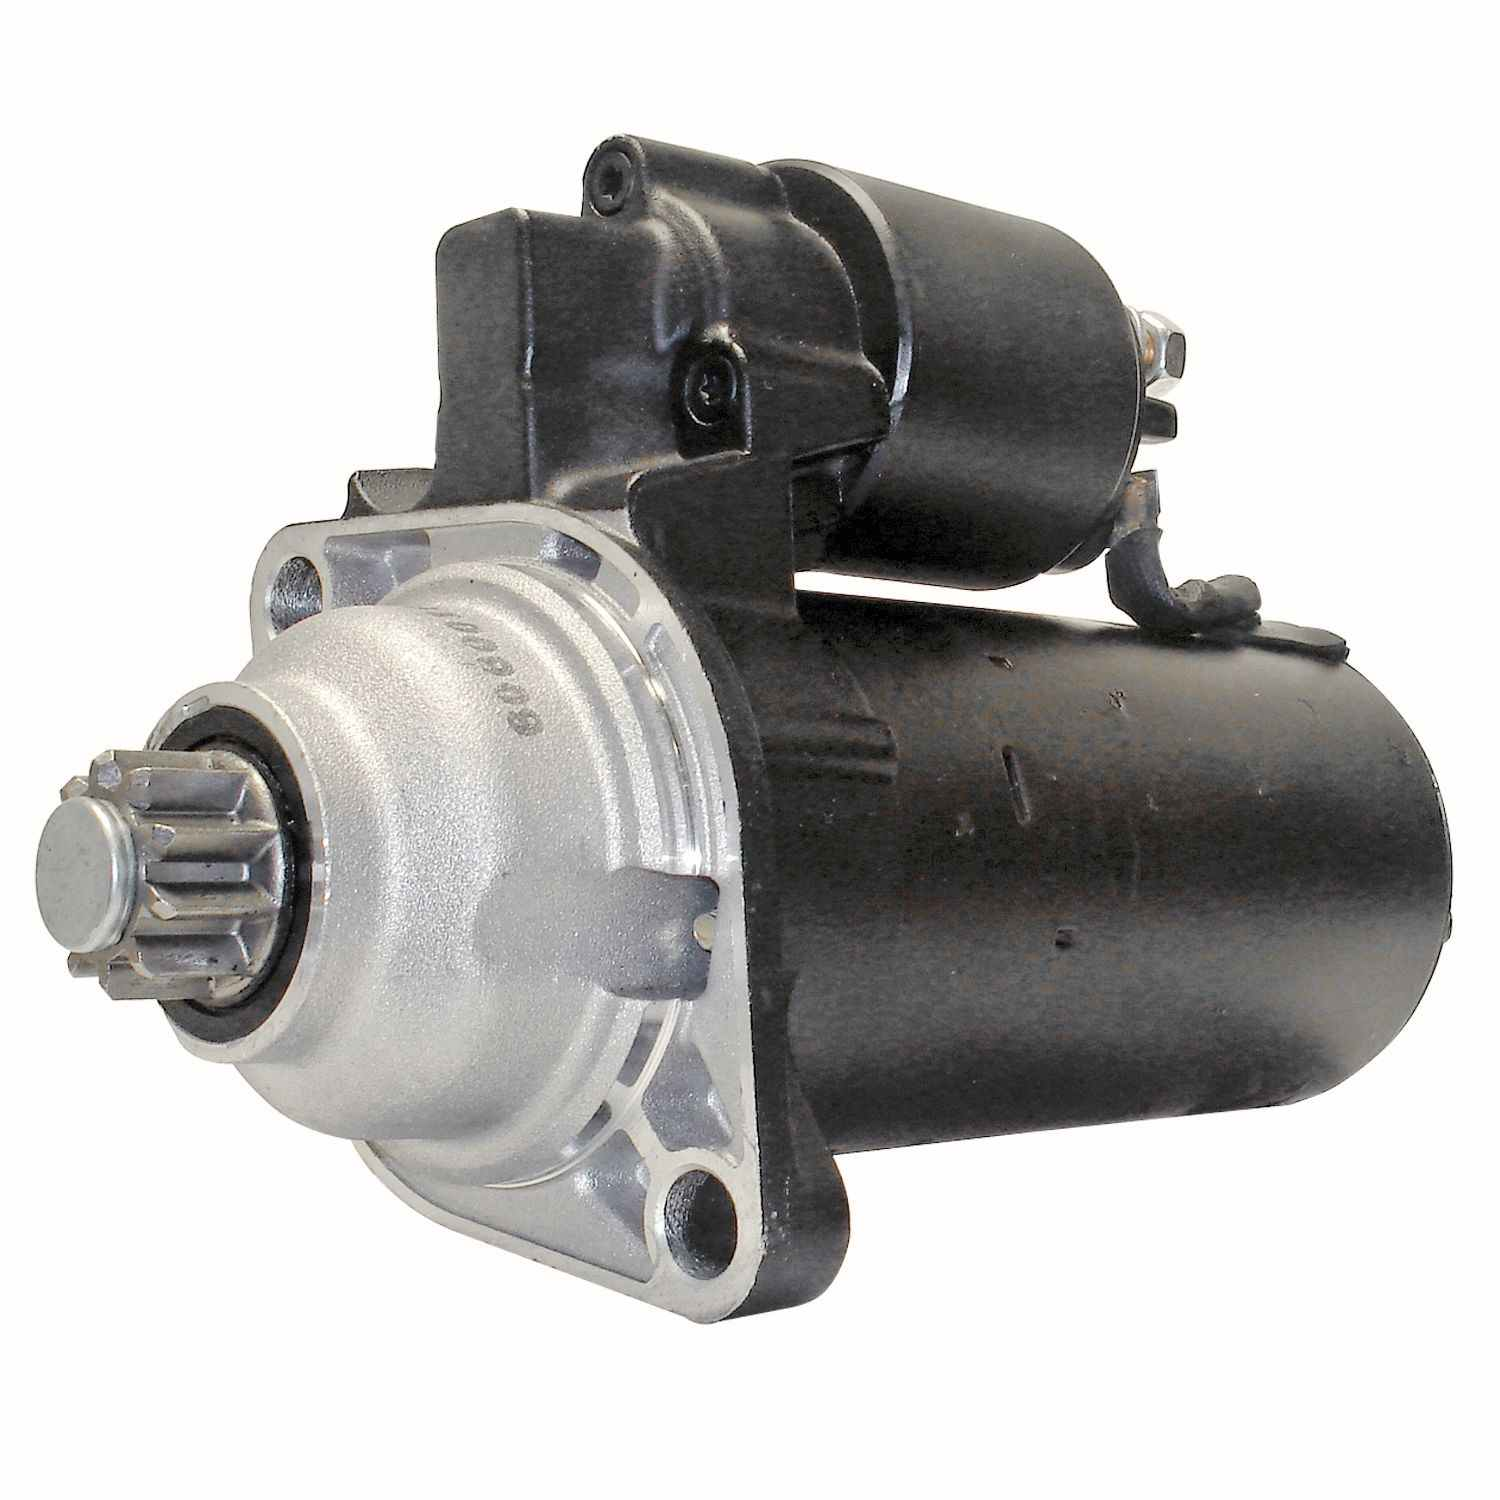 ACDELCO GOLD/PROFESSIONAL - Reman Starter Motor - DCC 336-1695